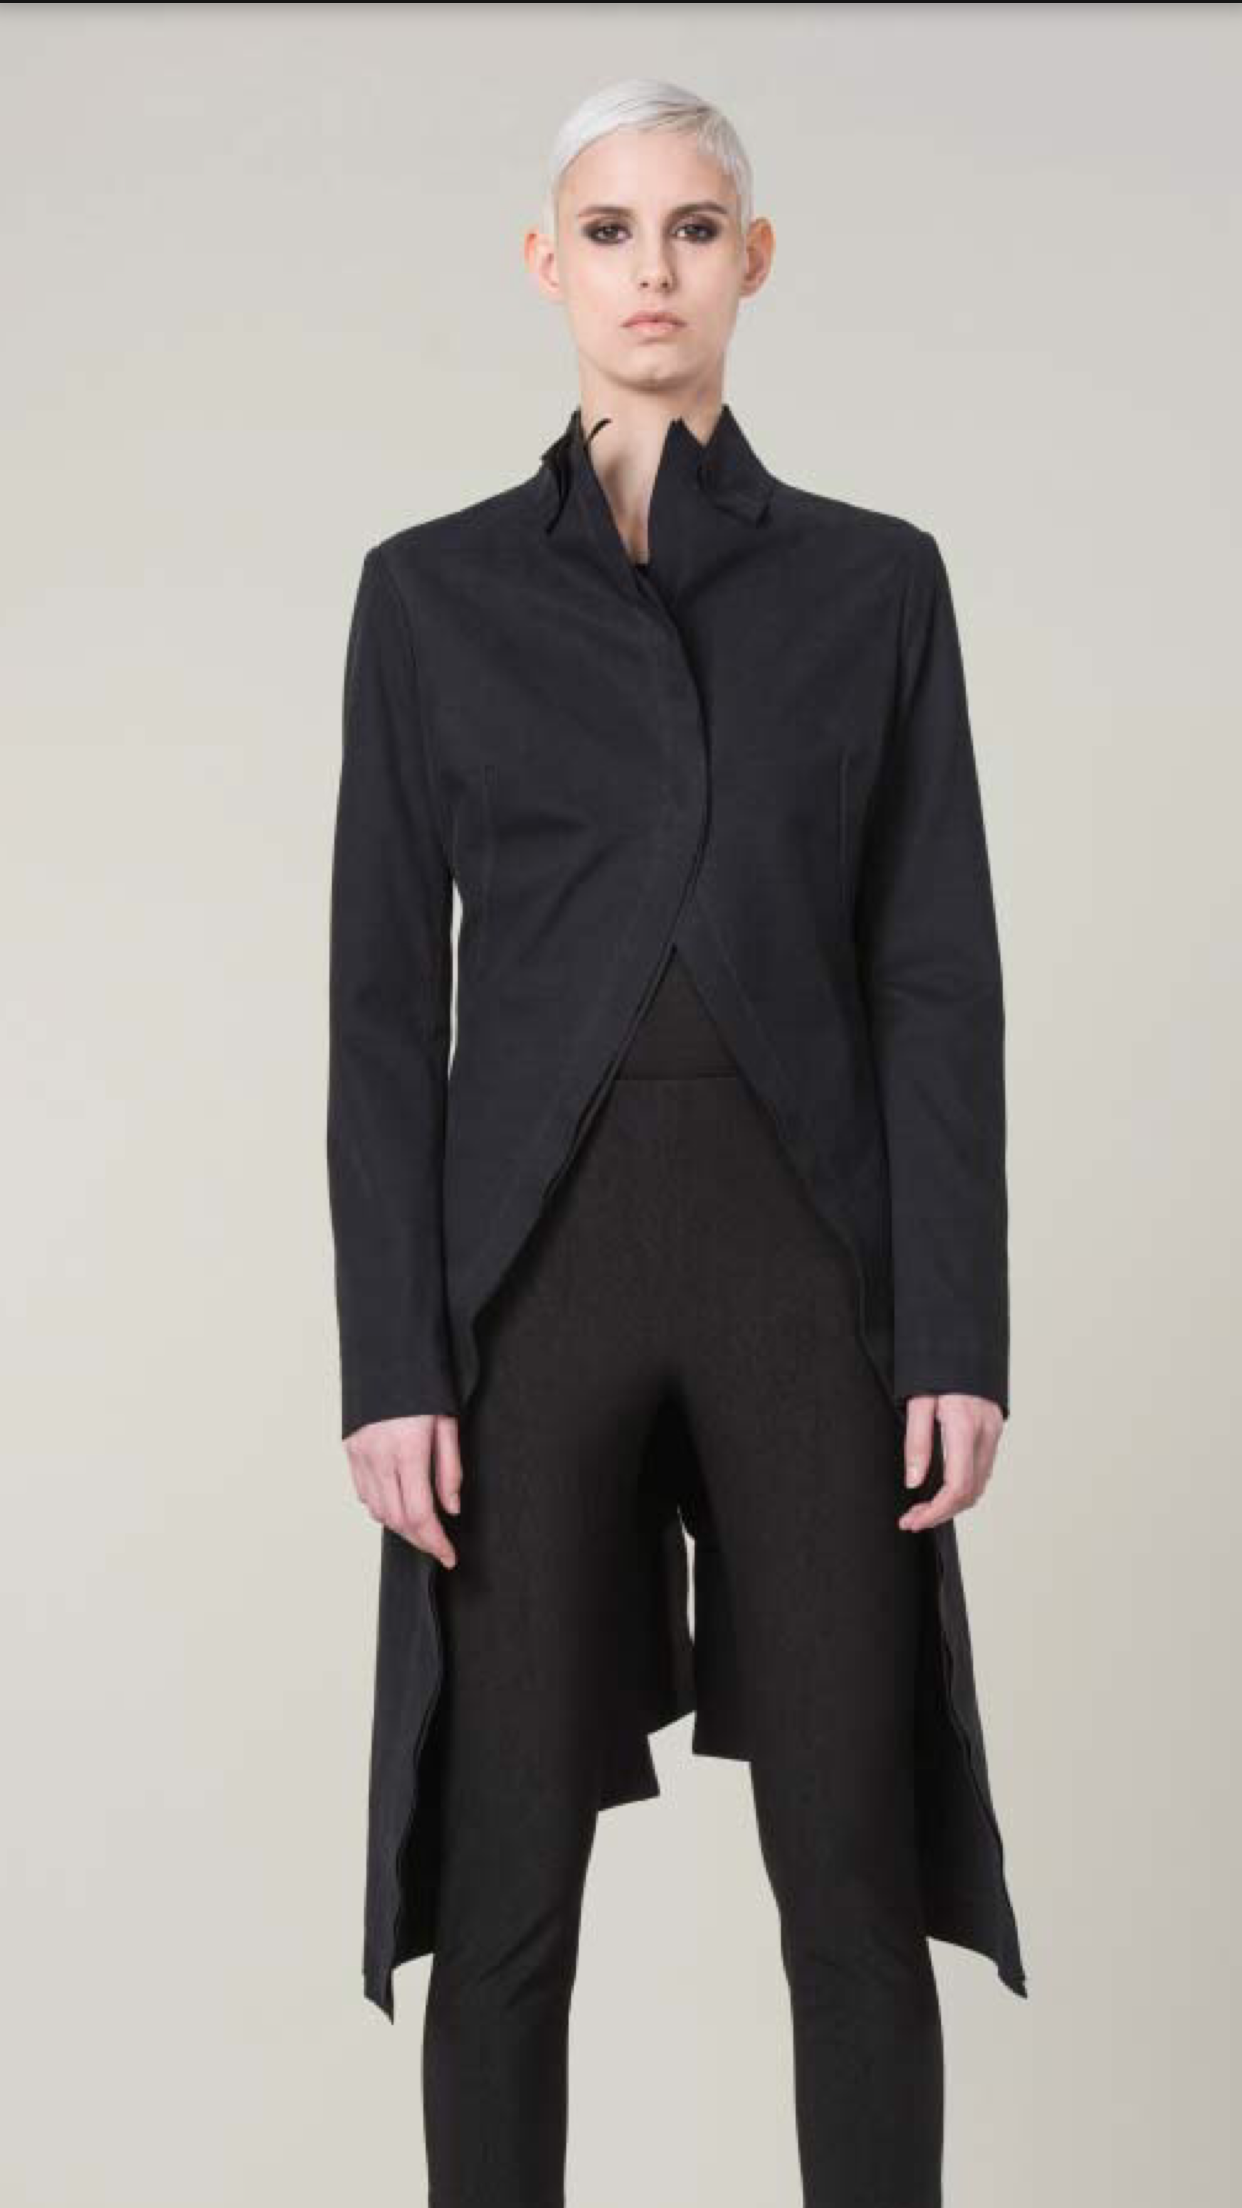 Anett Roestel Cutaway Style Coat and Pants